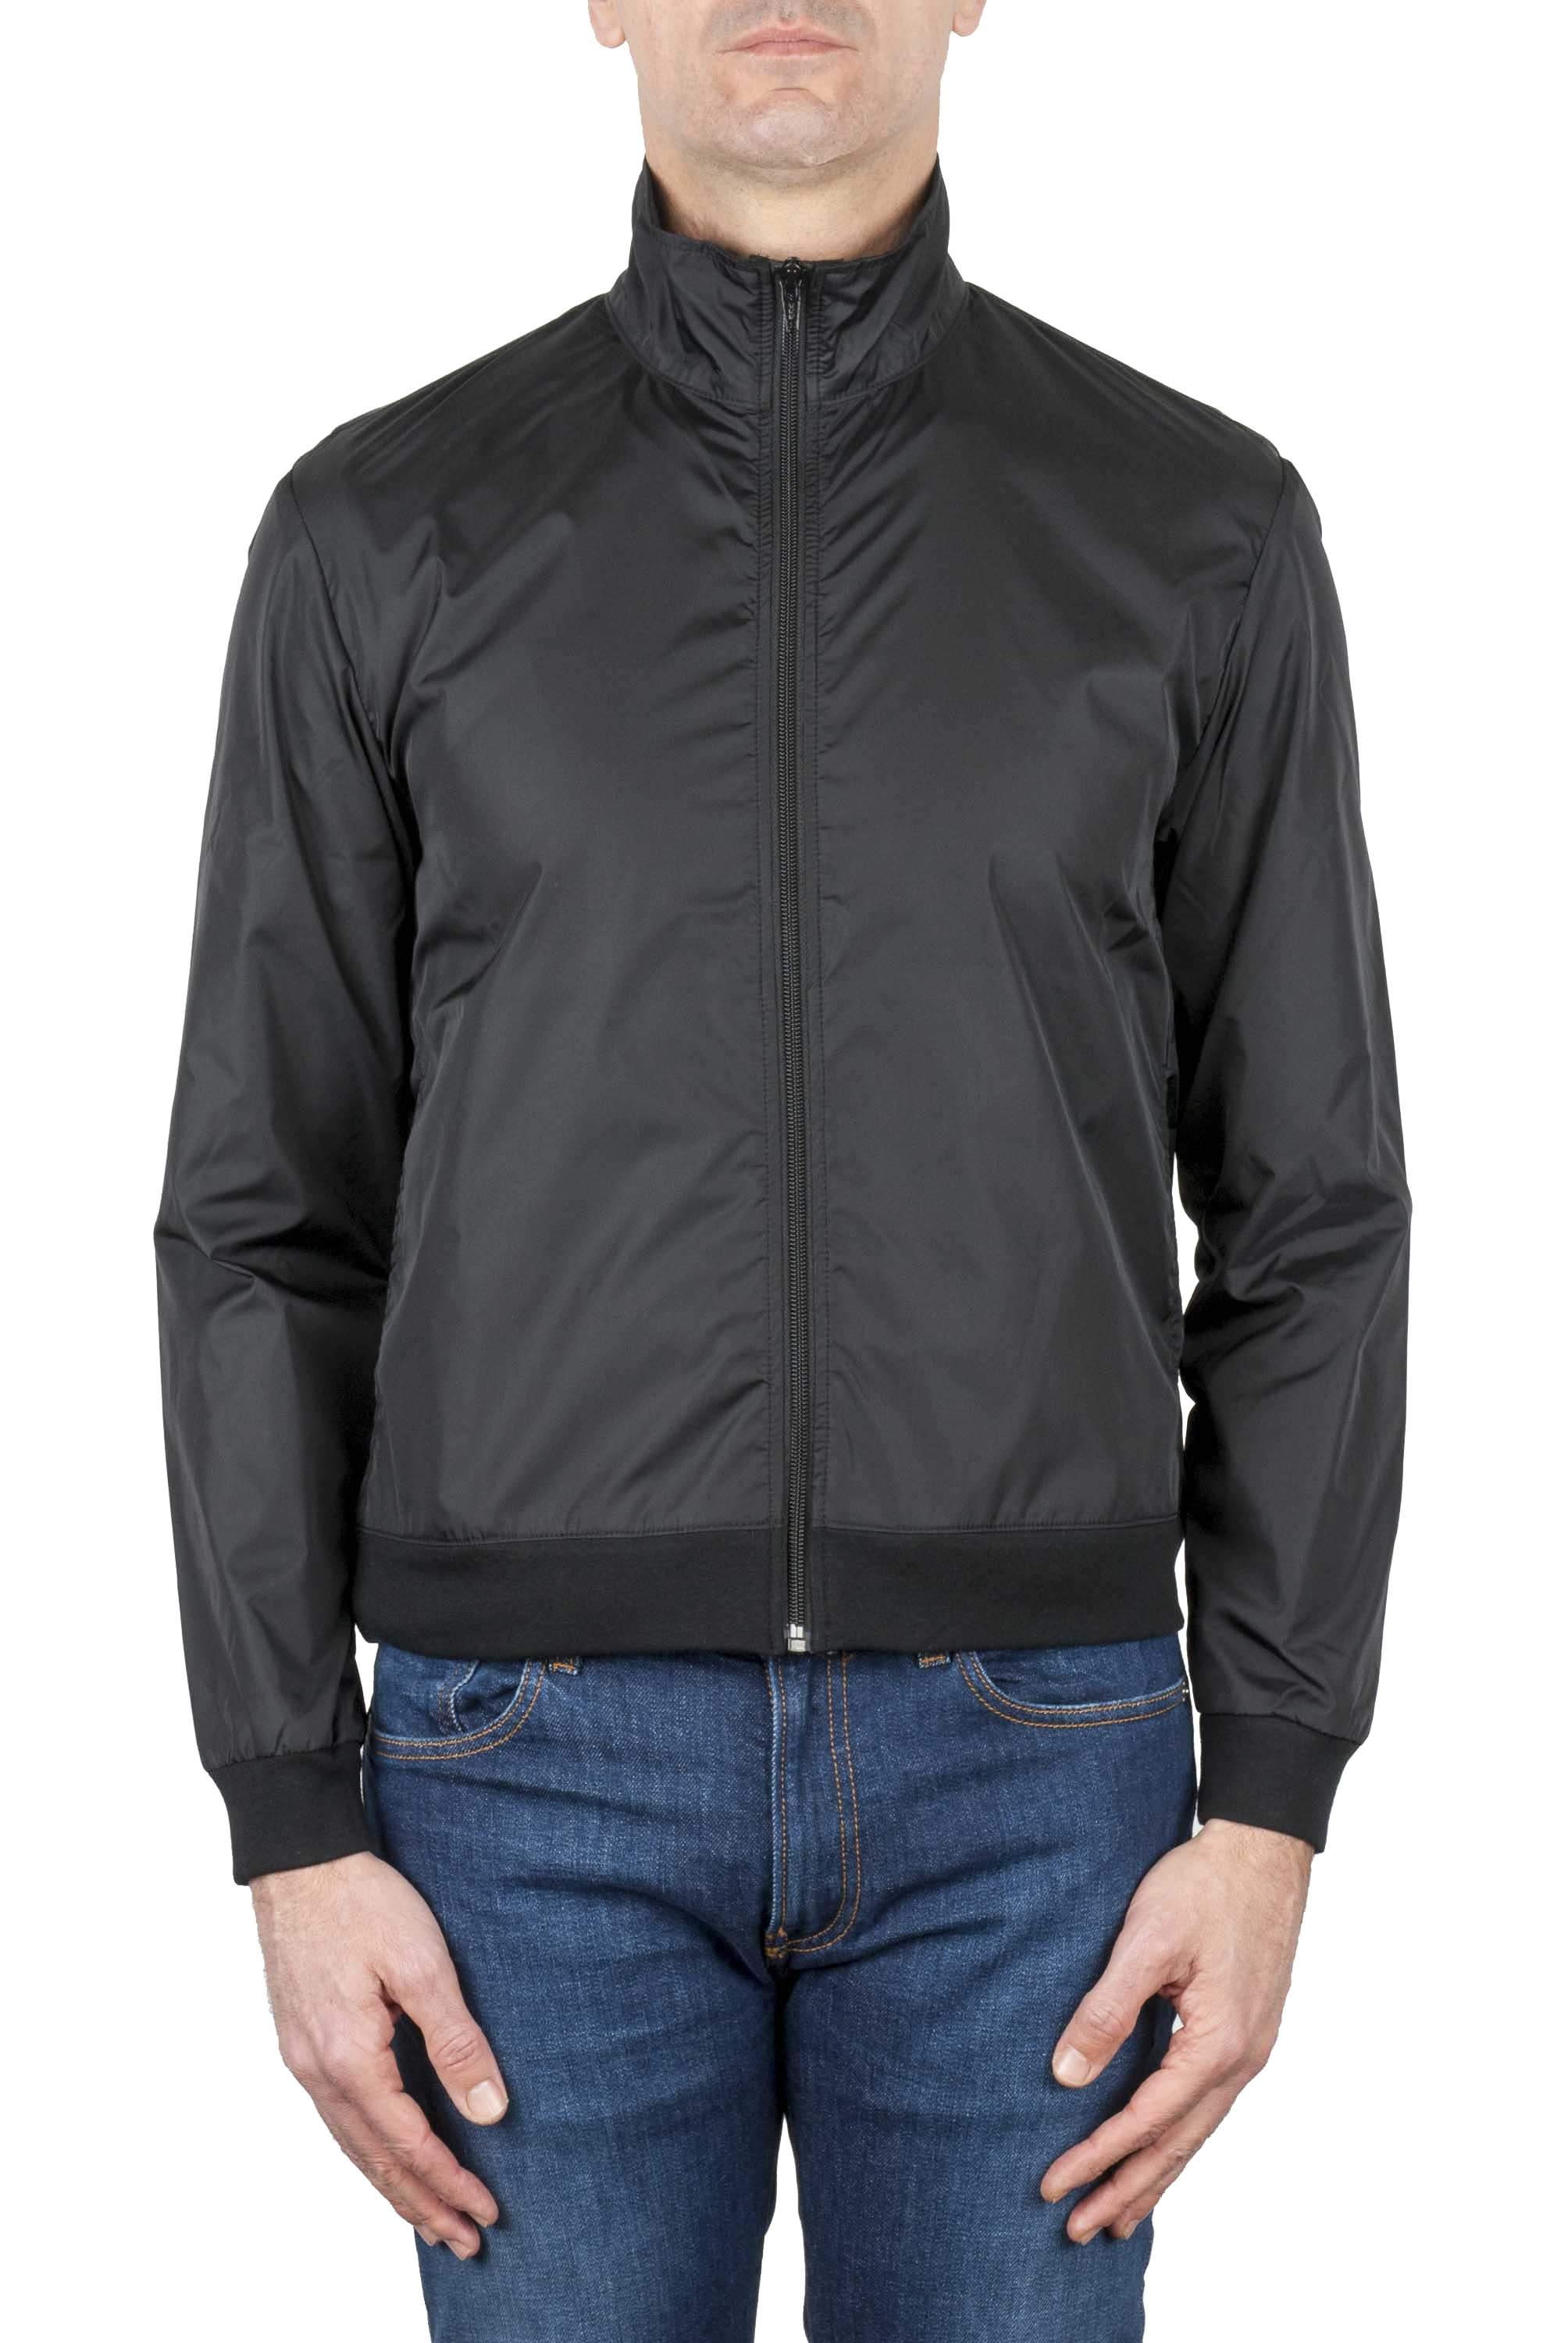 SBU 01565_19AW Windbreaker bomber jacket in black ultra-lightweight nylon 01